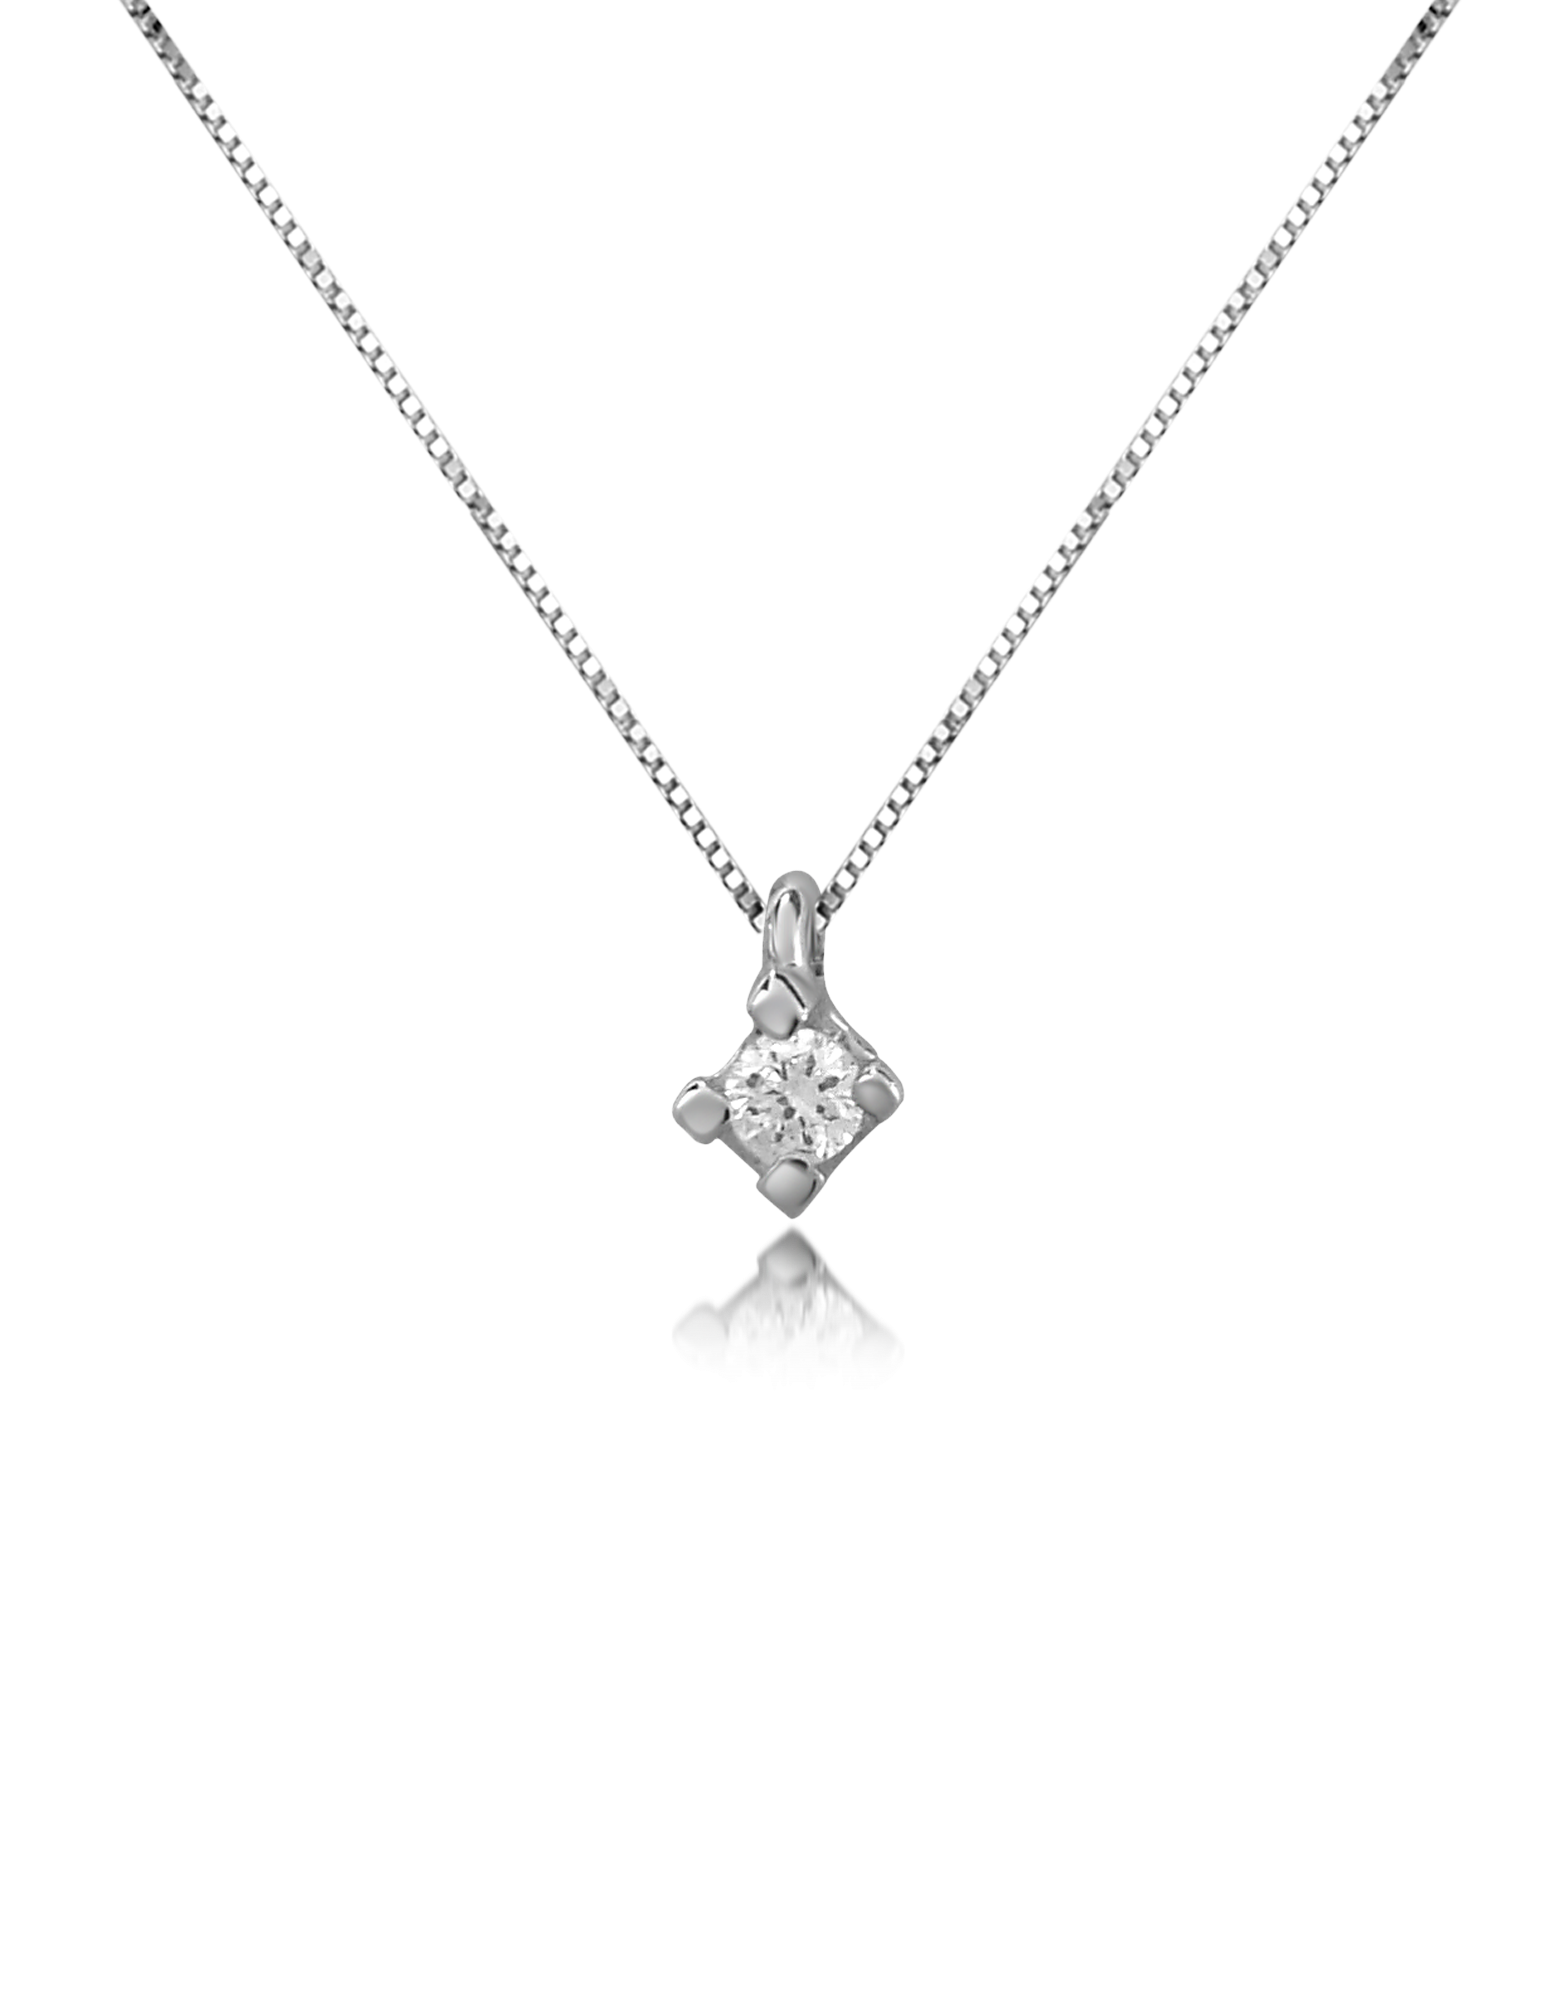 Image of 0.03 ct Diamond Solitaire Pendant 18K Gold Necklace